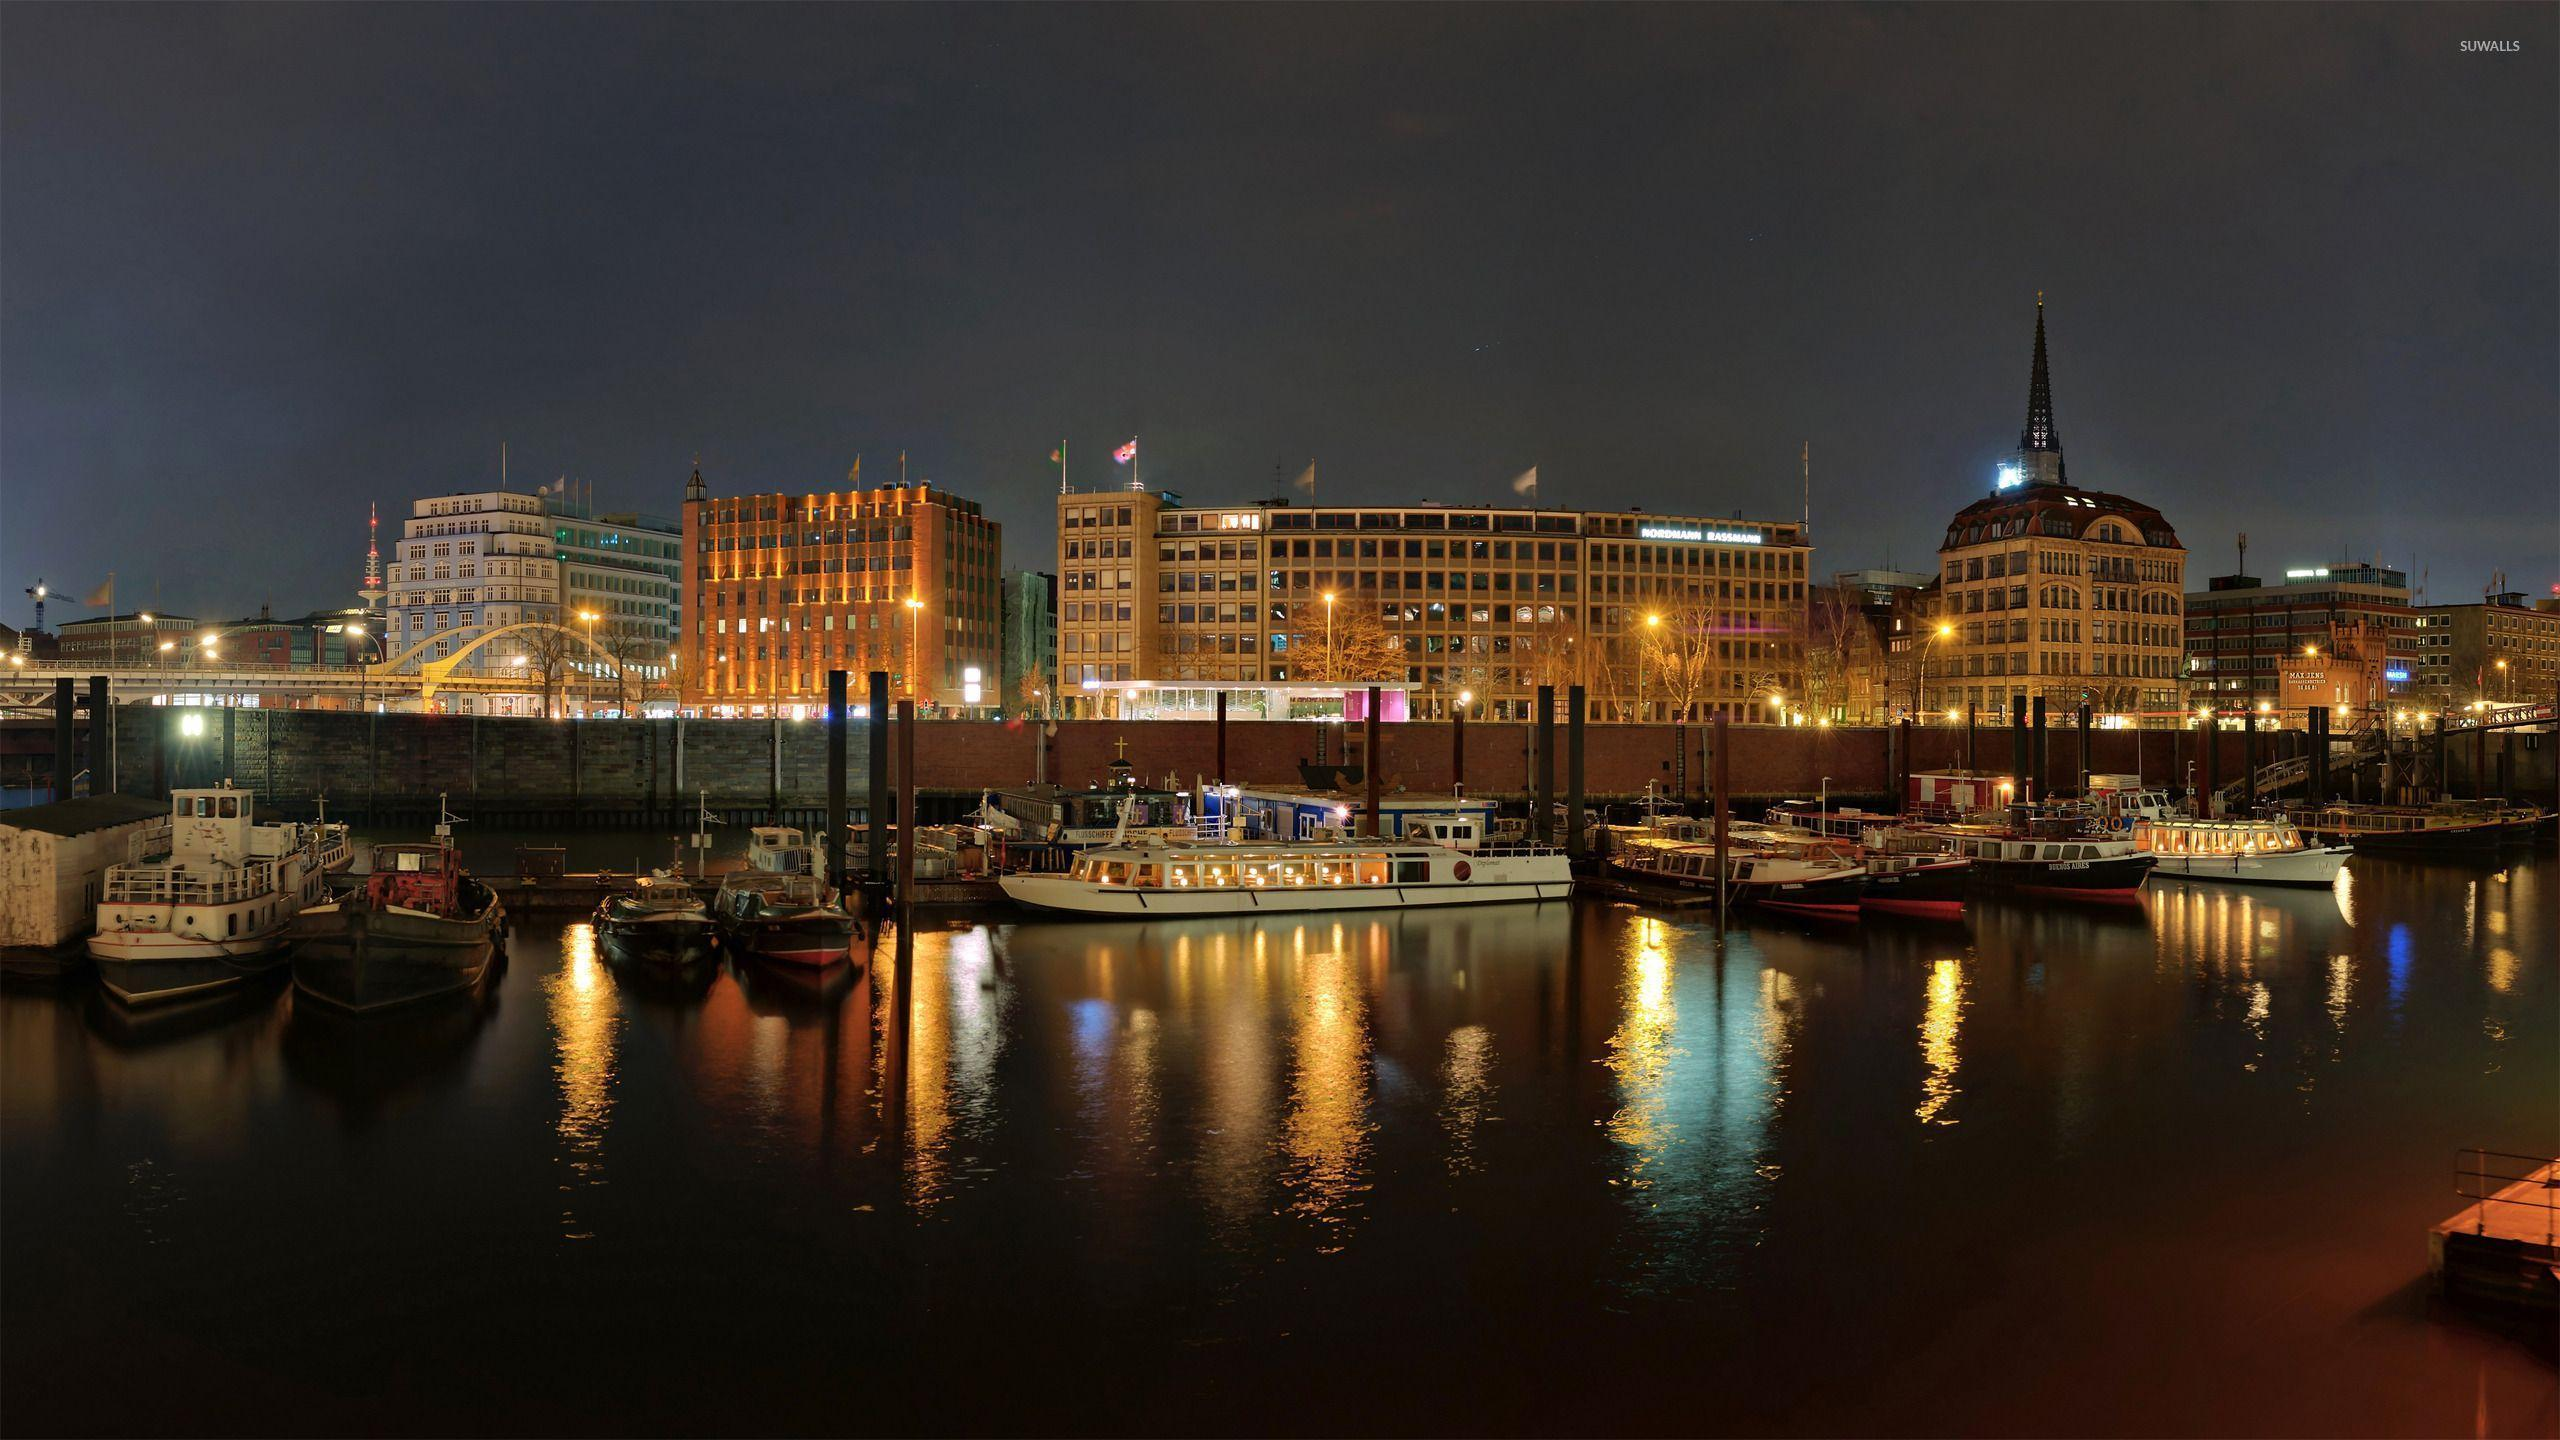 Hamburg harbour at night wallpaper - World wallpapers - #26299